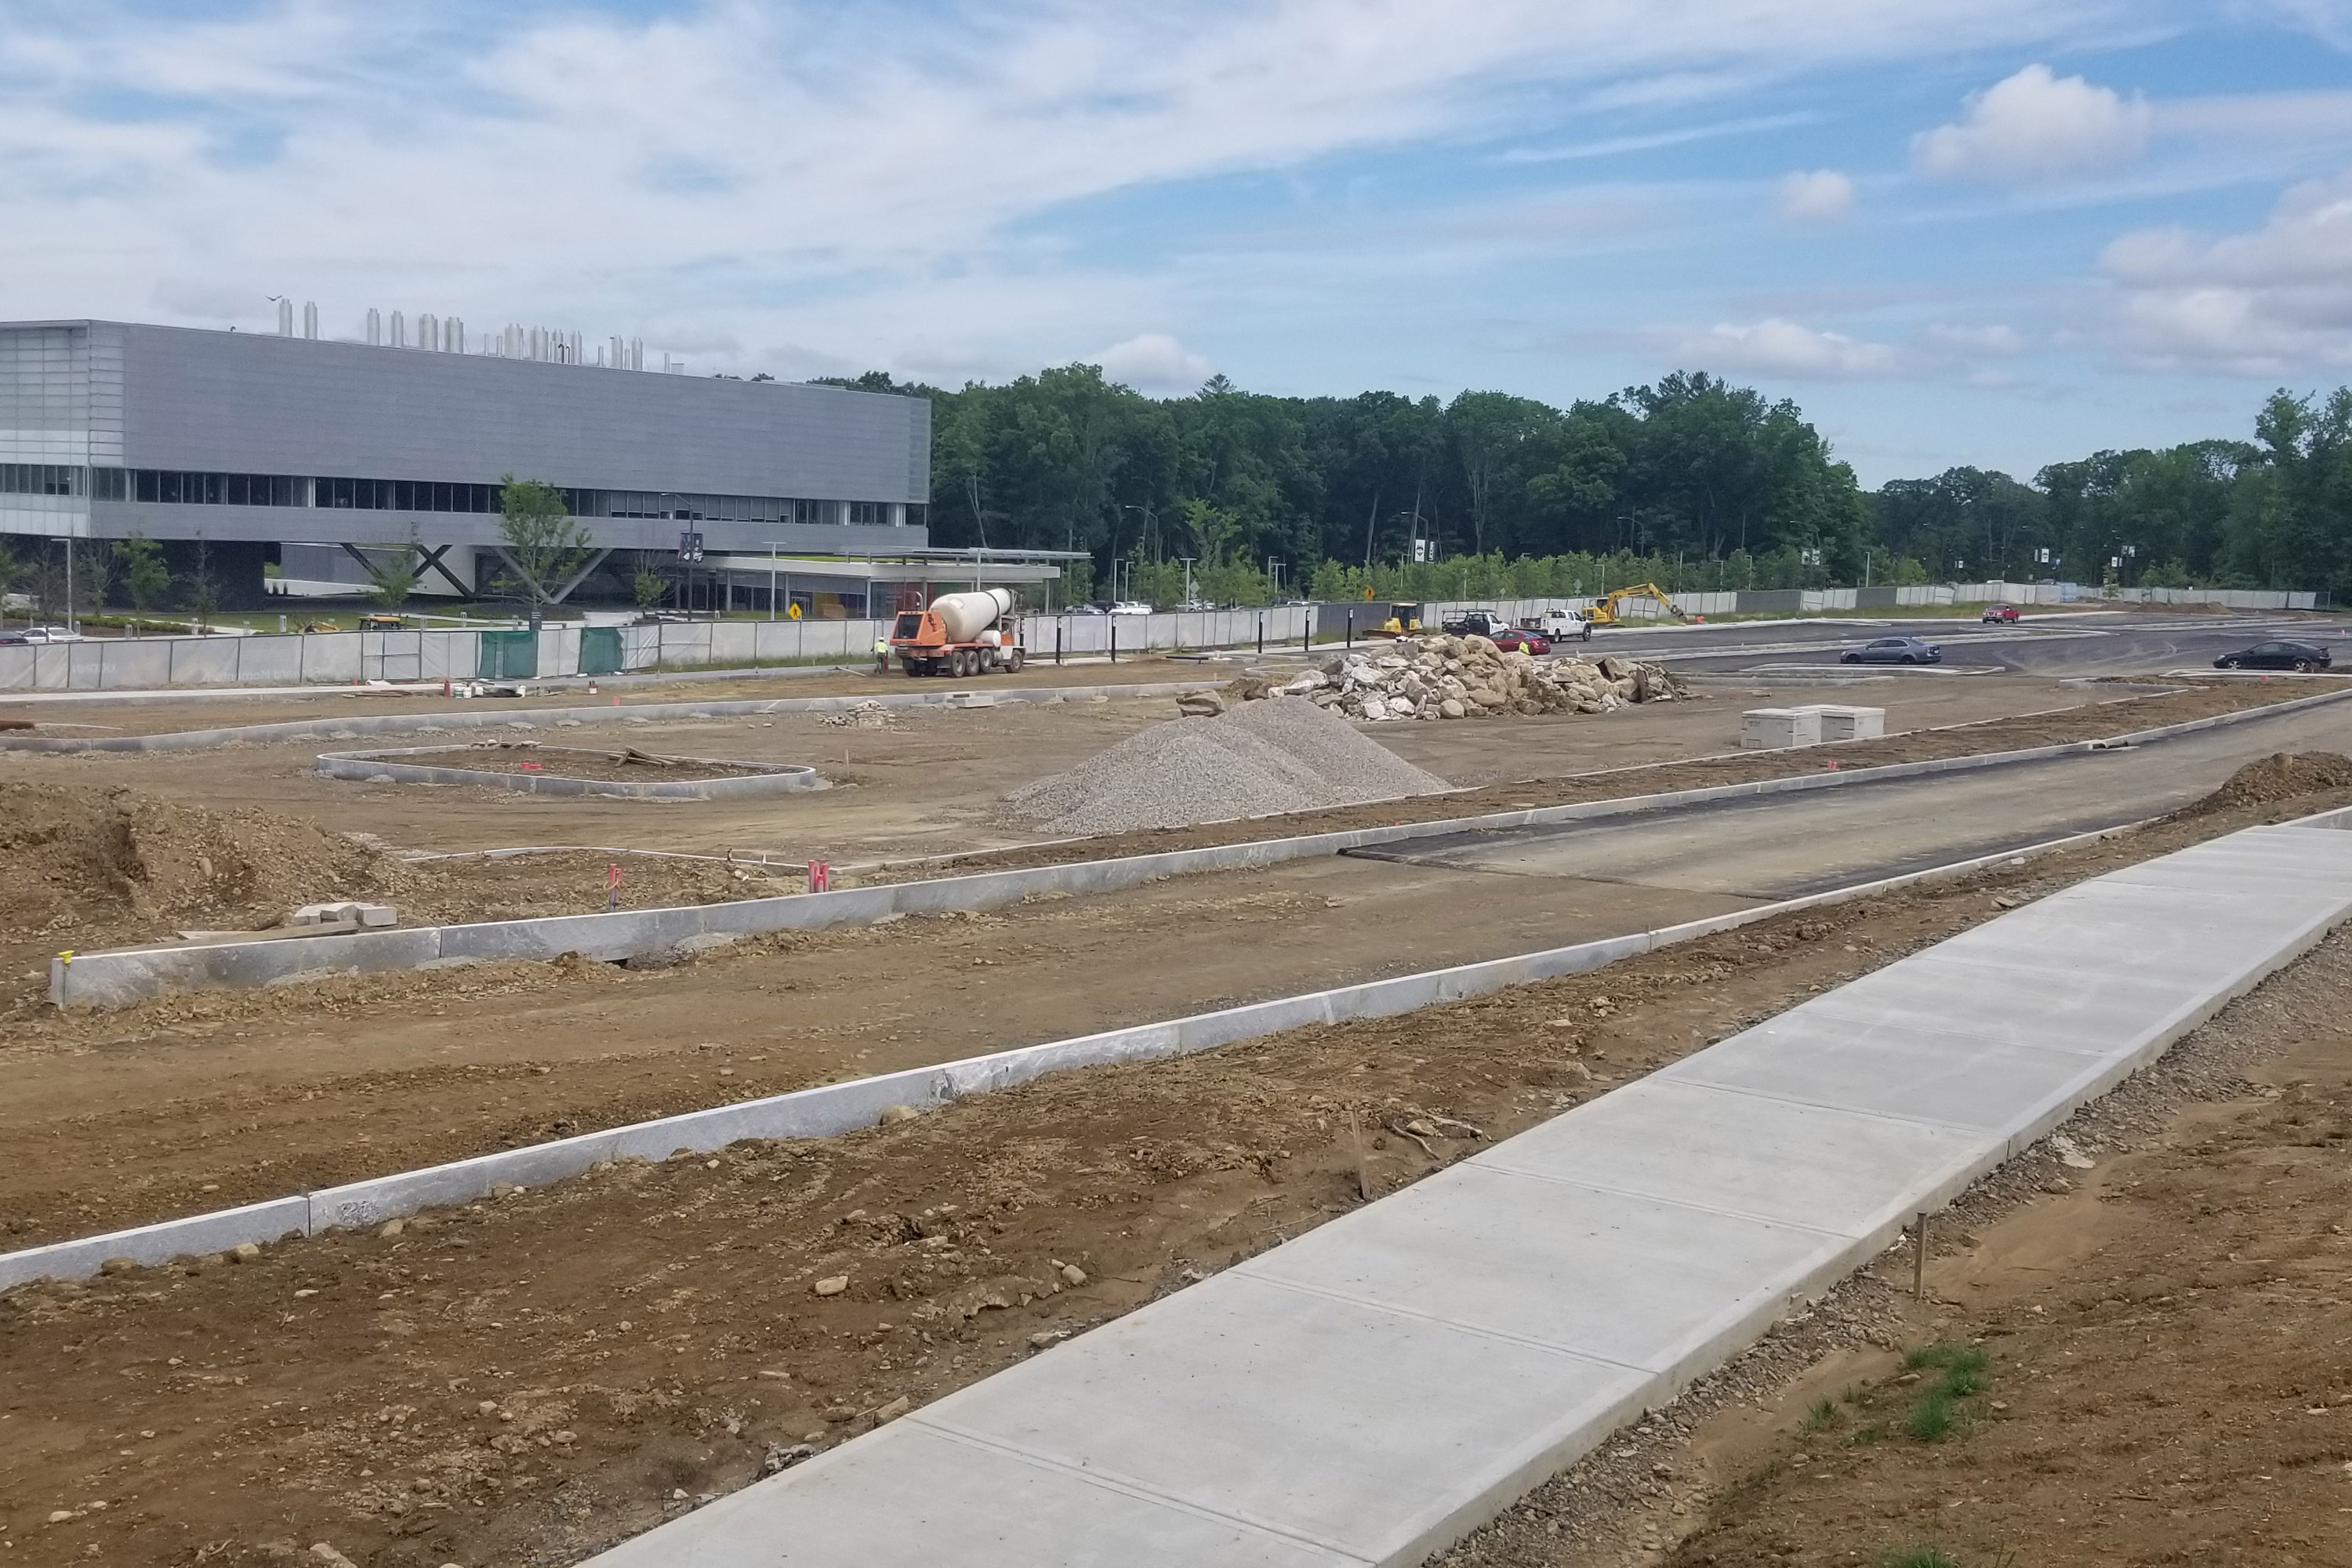 Lot K, a new parking lot on Discovery Drive across from the Innovation Partnership Building, will be completed prior to the fall 2019 semester, providing 700 spaces for commuter students. (Mike Enright/UConn Photo)